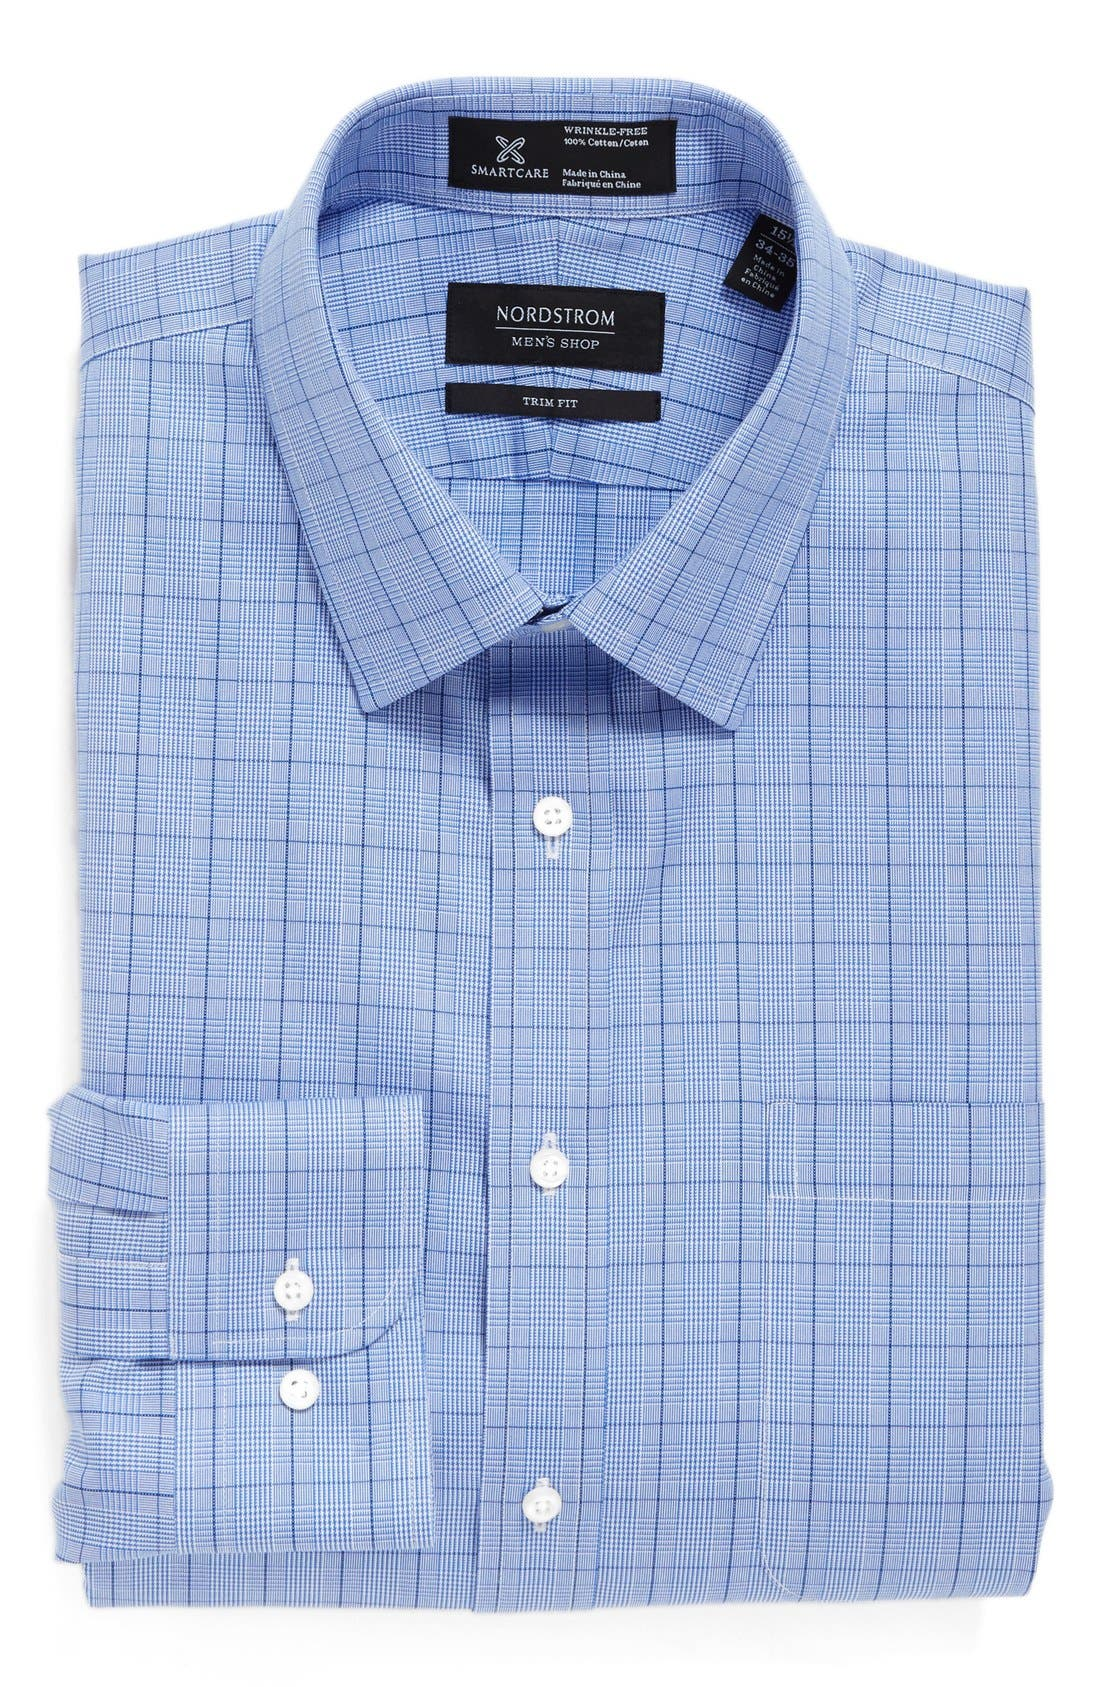 Alternate Image 1 Selected - Nordstrom Men's Shop Smartcare™ Trim Fit Plaid Dress Shirt